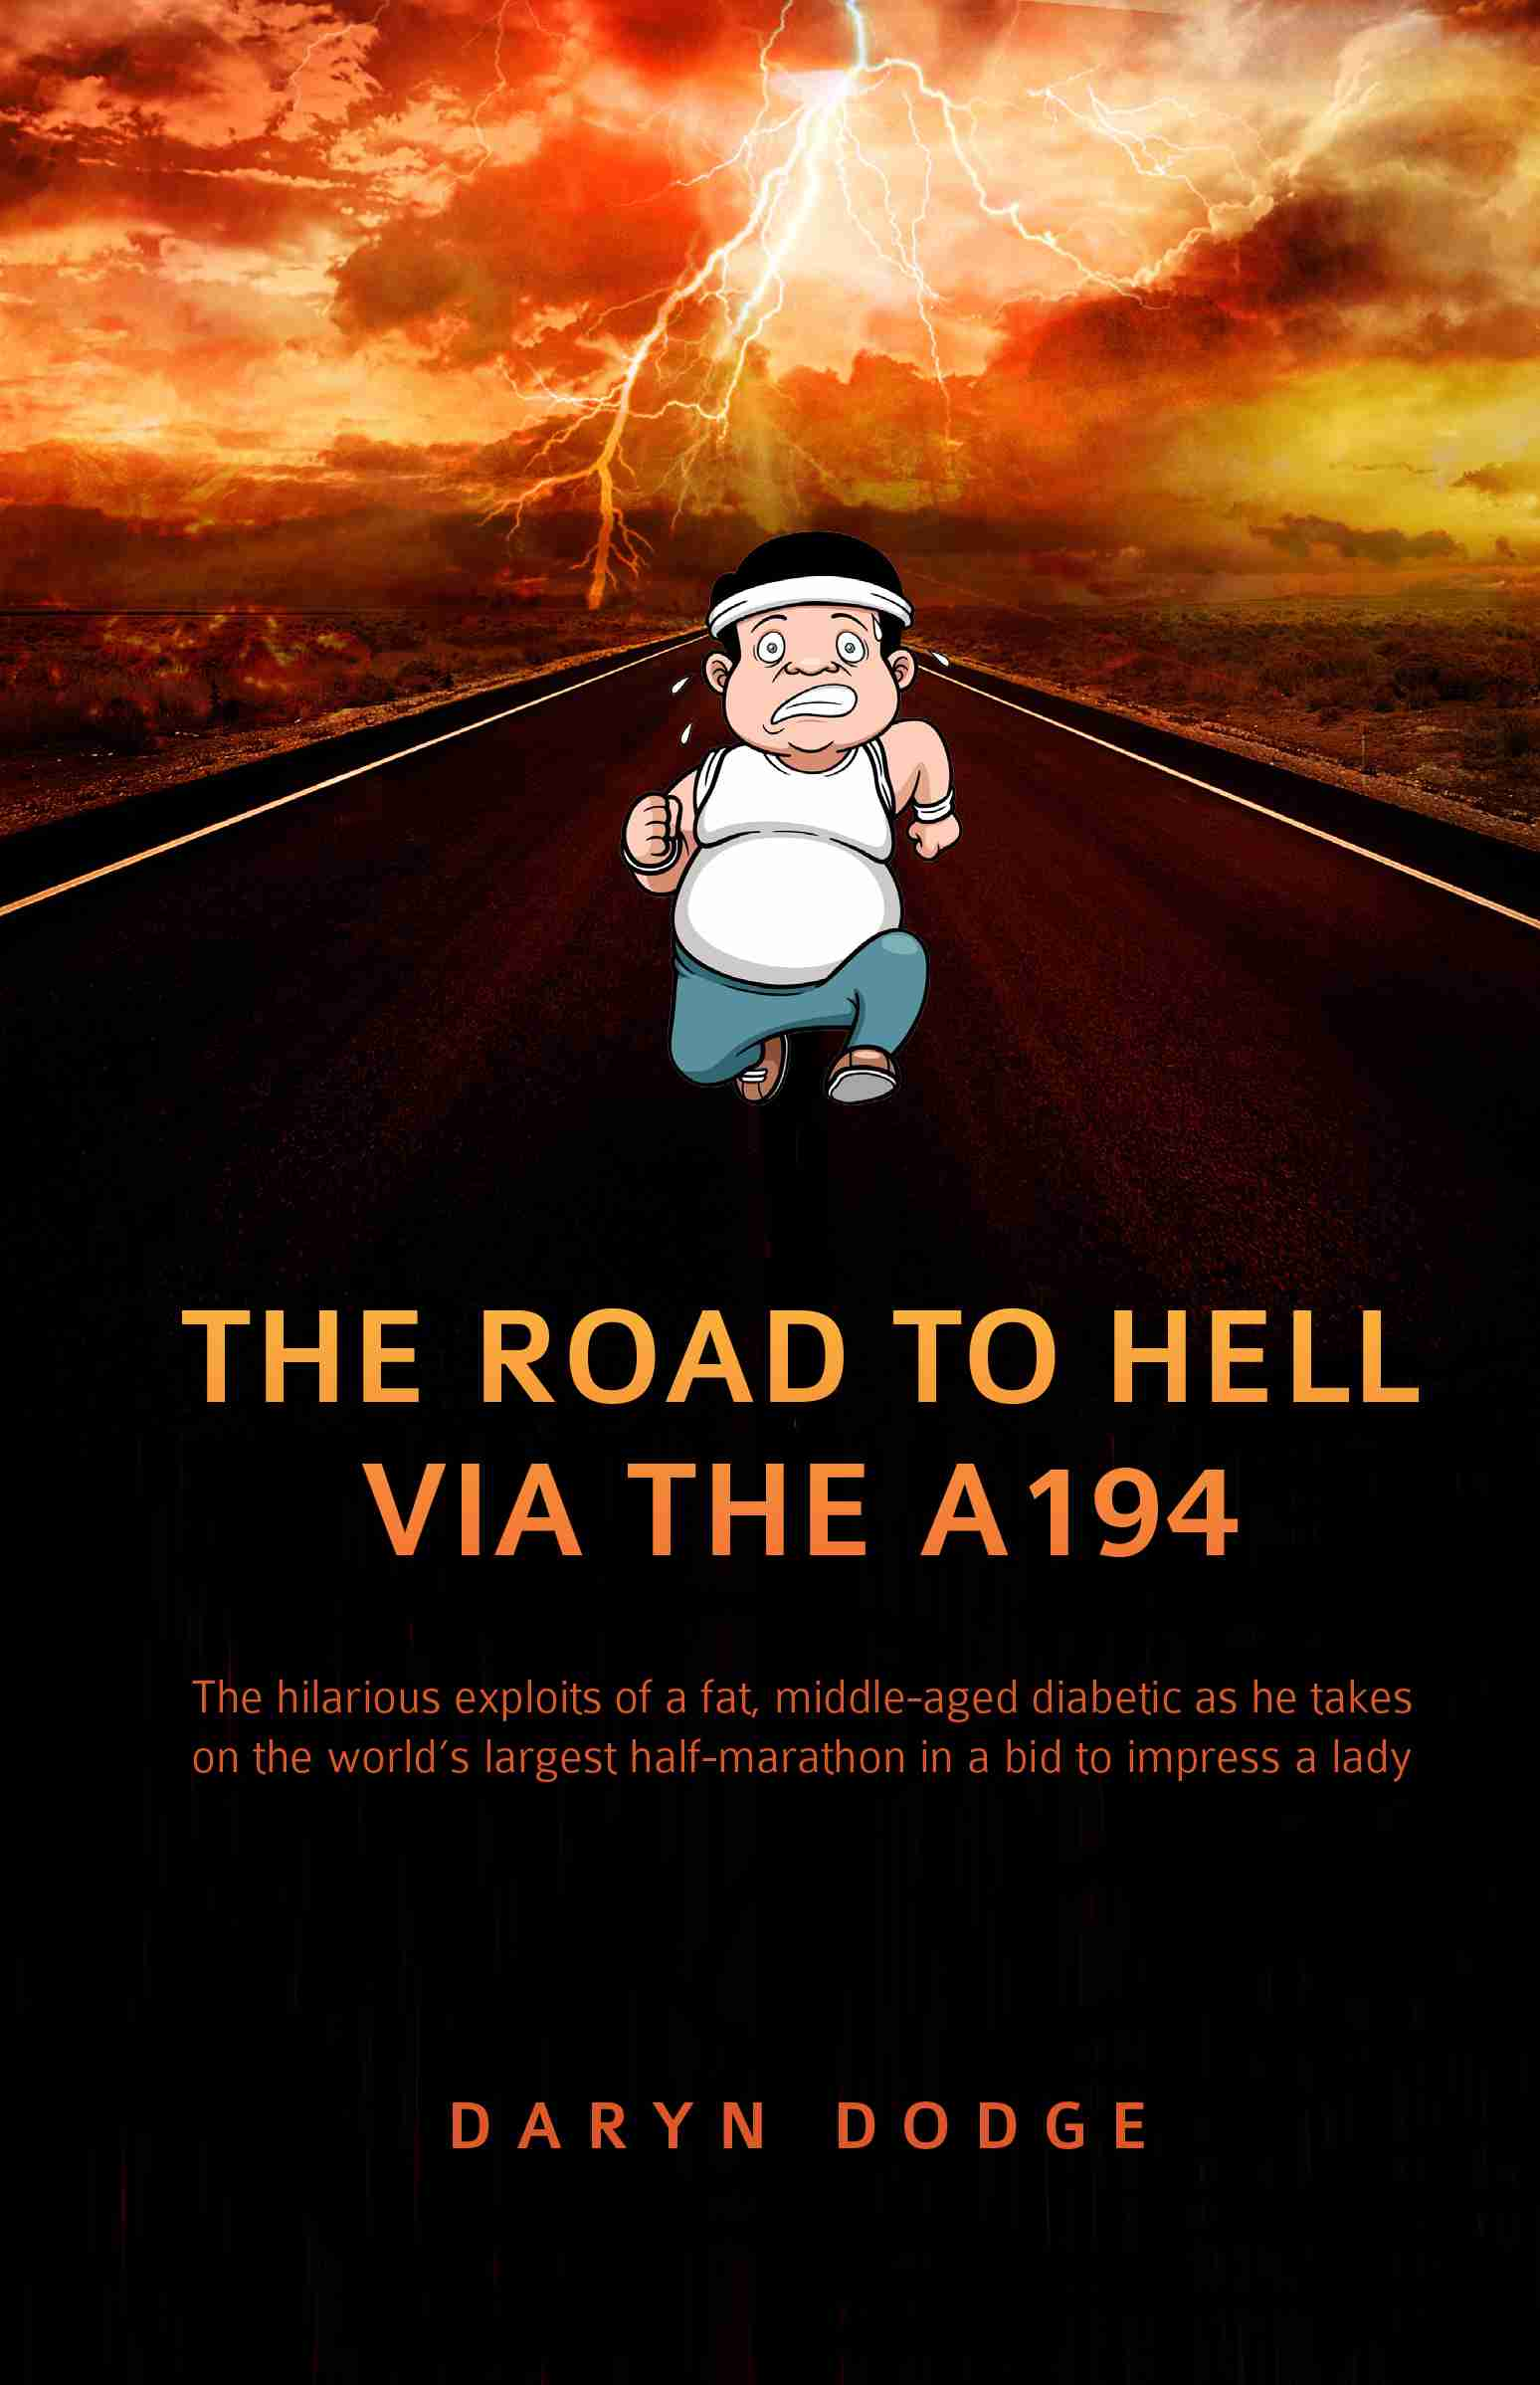 The Road to Hell via the A194 by Daryn Dodge